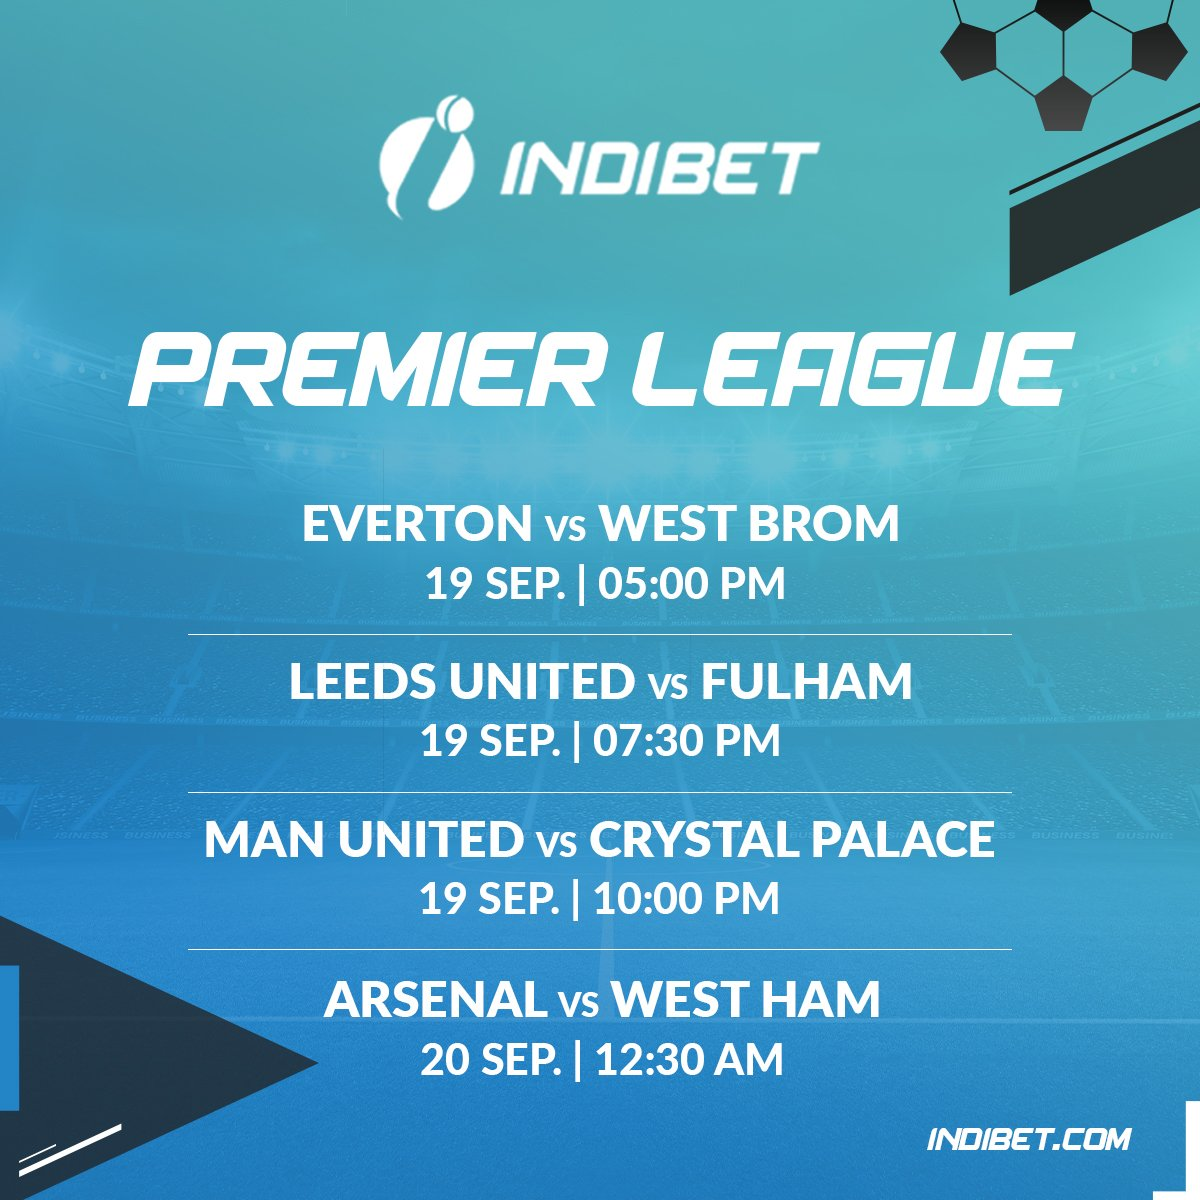 Here's the fixture list for tomorrow's matches! Comment with a ⚽ & let us know which team are you rooting for!  #football #instafootball #dropkick #igfootball  #footballteams #premierleauge #premierleauge2020 #footballfans #sports #games #instafootballlikes #INDIBET https://t.co/ddIYe2QhaA